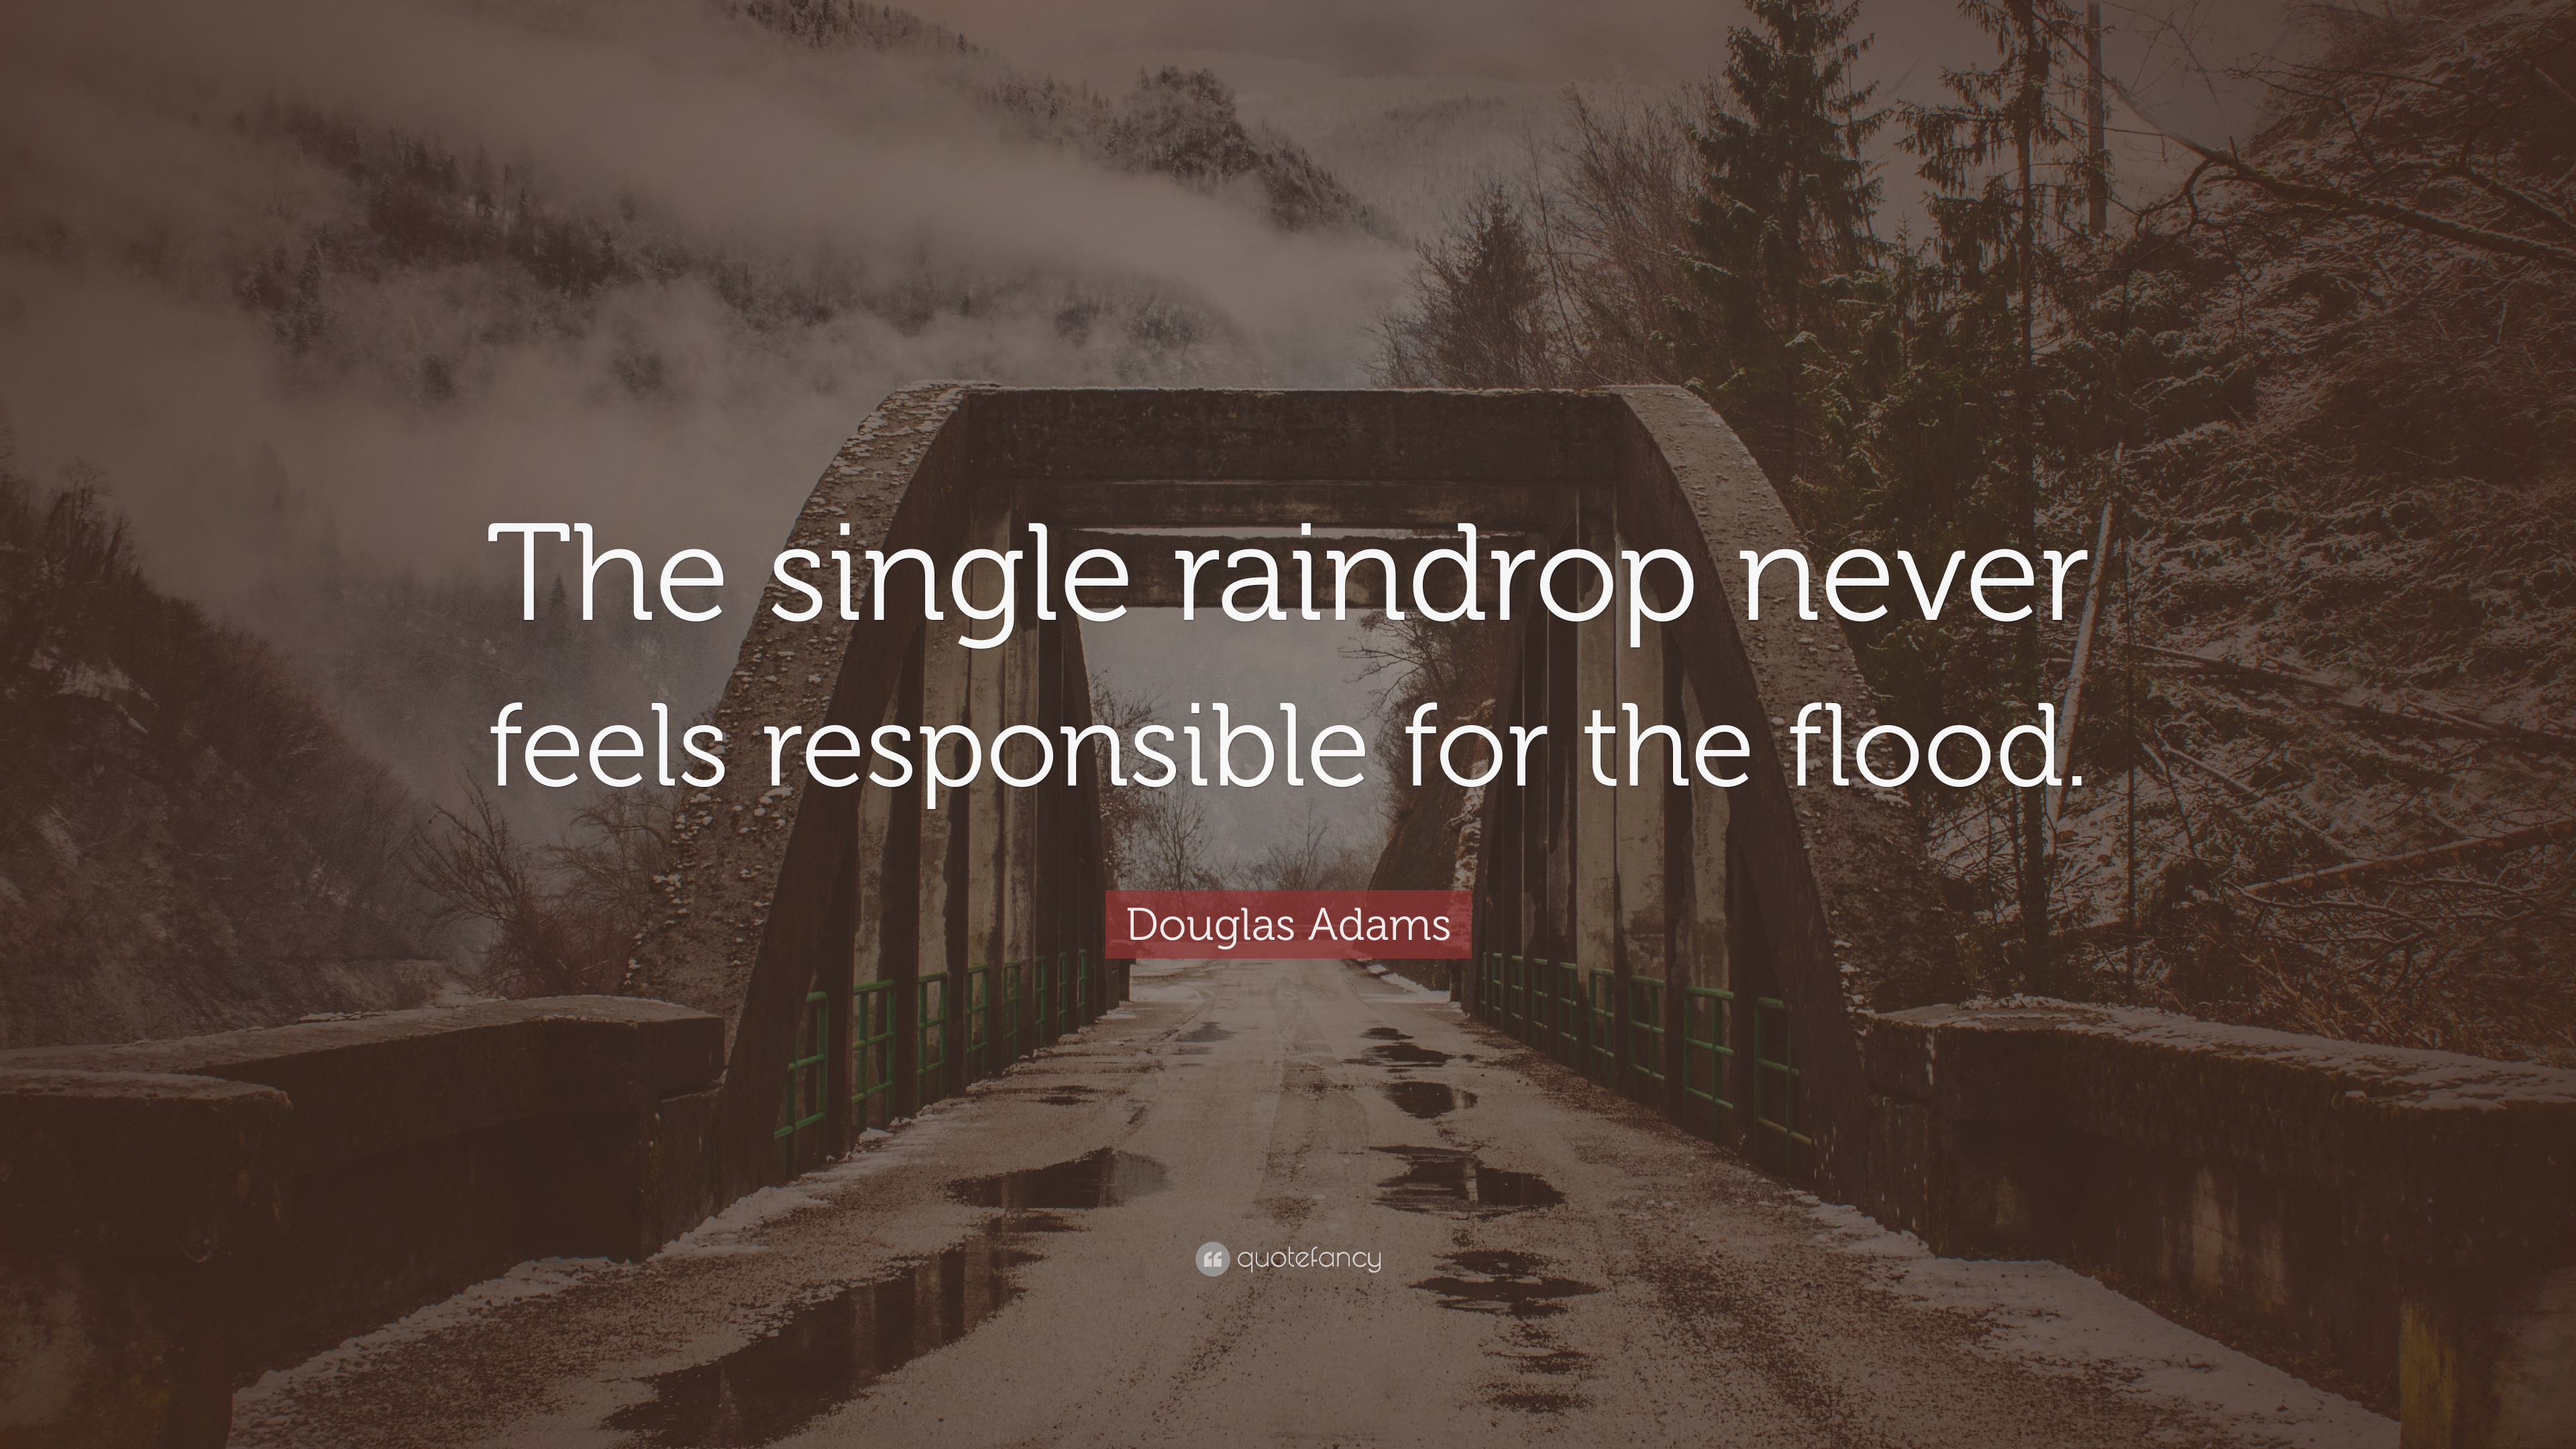 No single raindrop believes it is to blame for the flood meaning